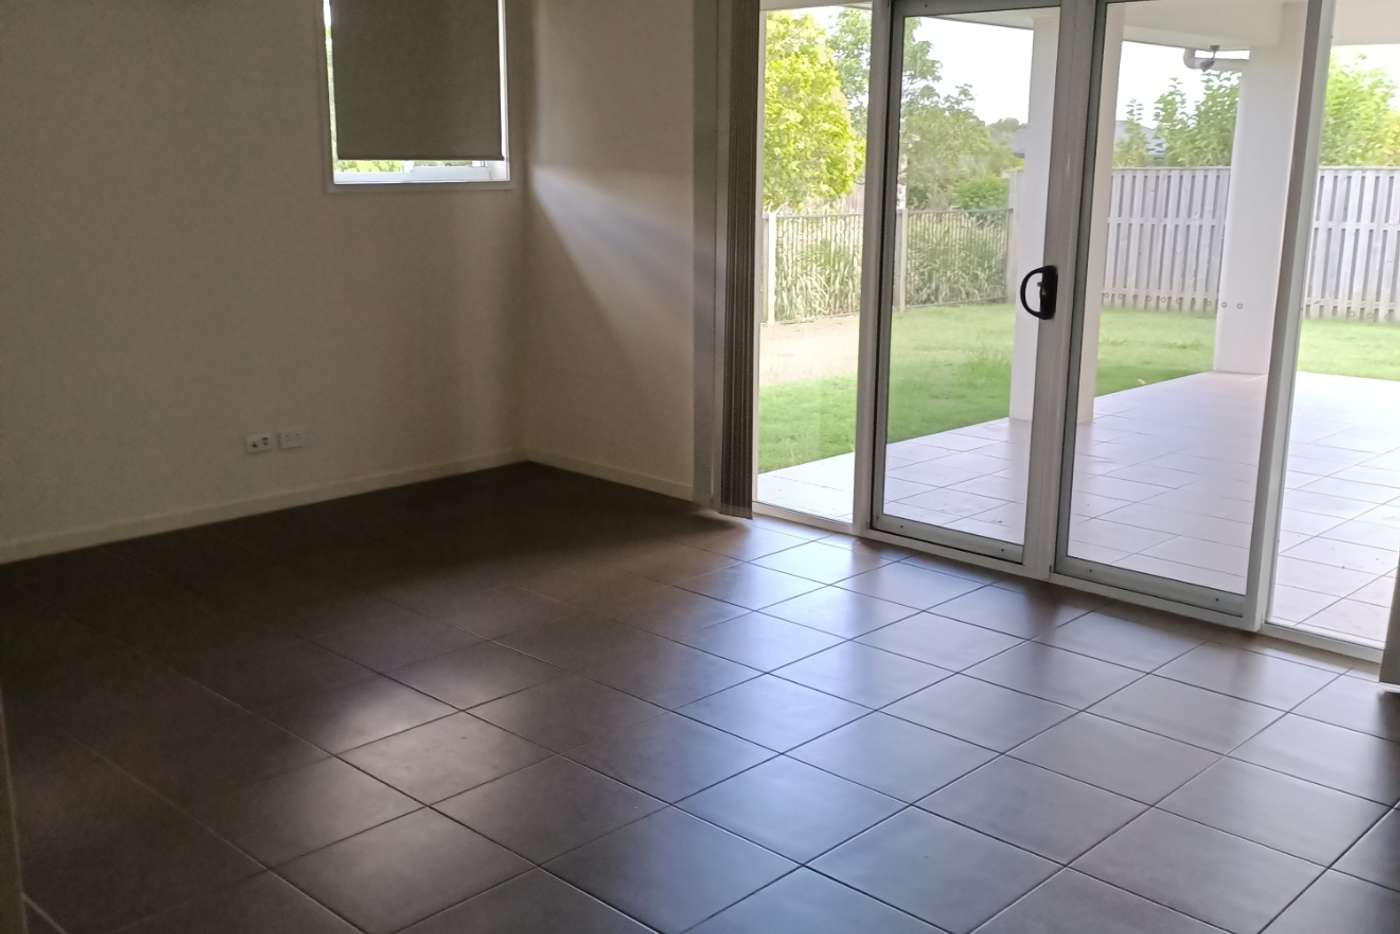 Seventh view of Homely house listing, 12 Greenmount Street, Pimpama QLD 4209